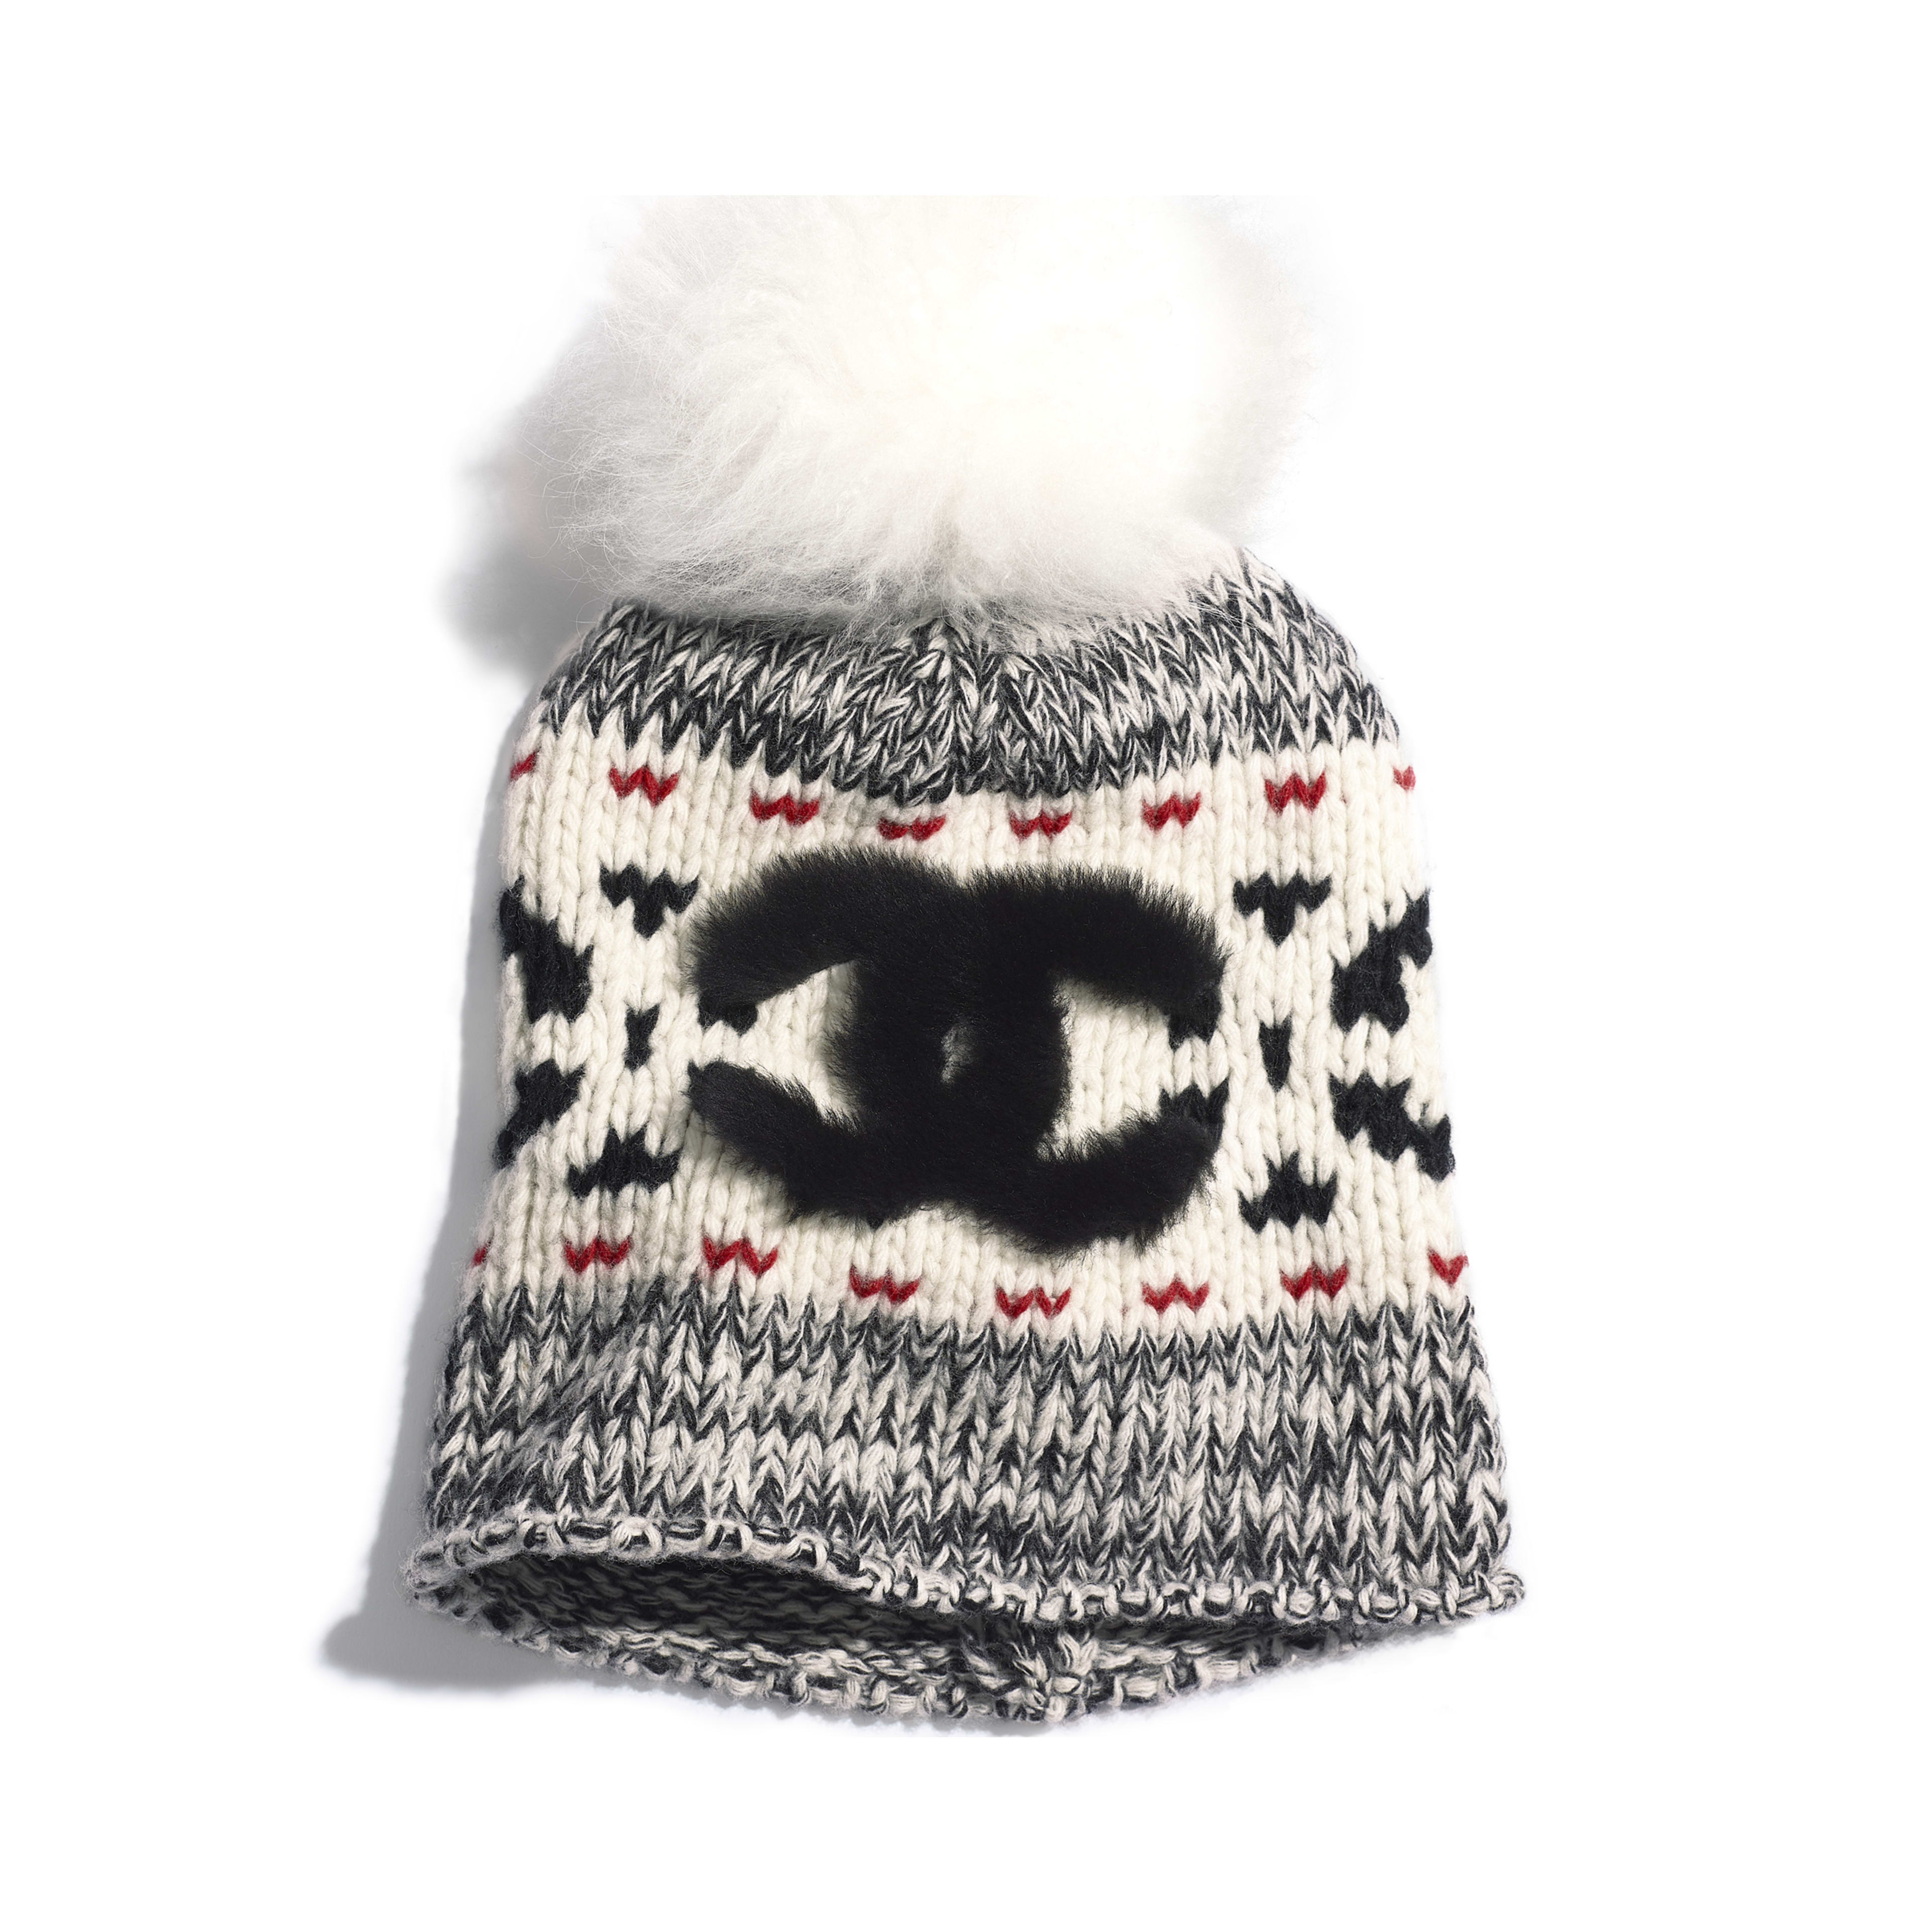 Beanie - Ivory, Black & Red - Wool & Shearling - Default view - see full sized version